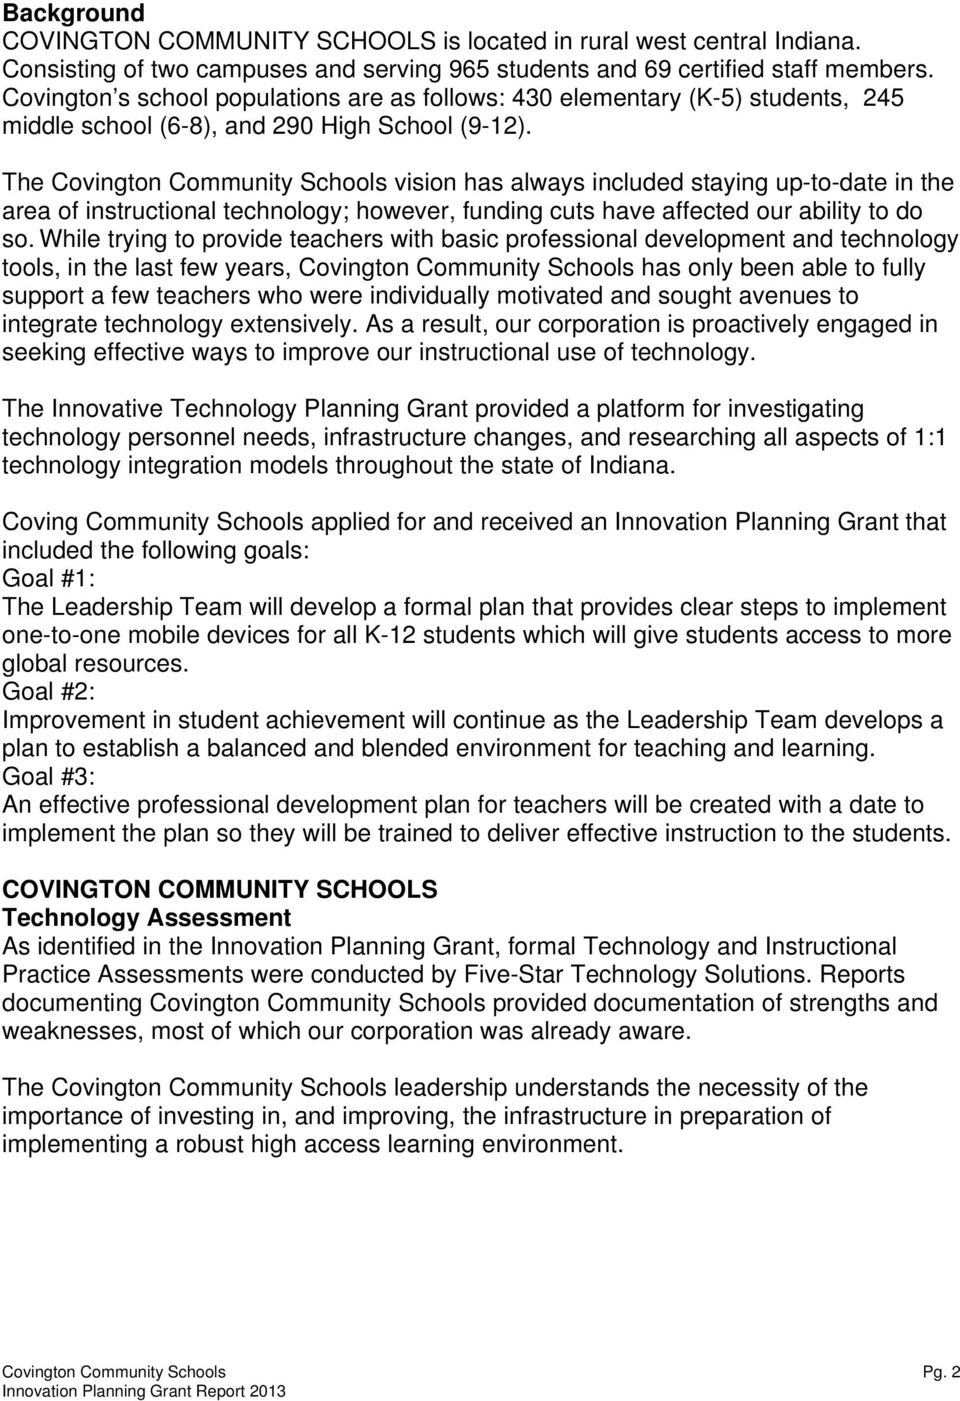 The Covington Community Schools vision has always included staying up-to-date in the area of instructional technology; however, funding cuts have affected our ability to do so.